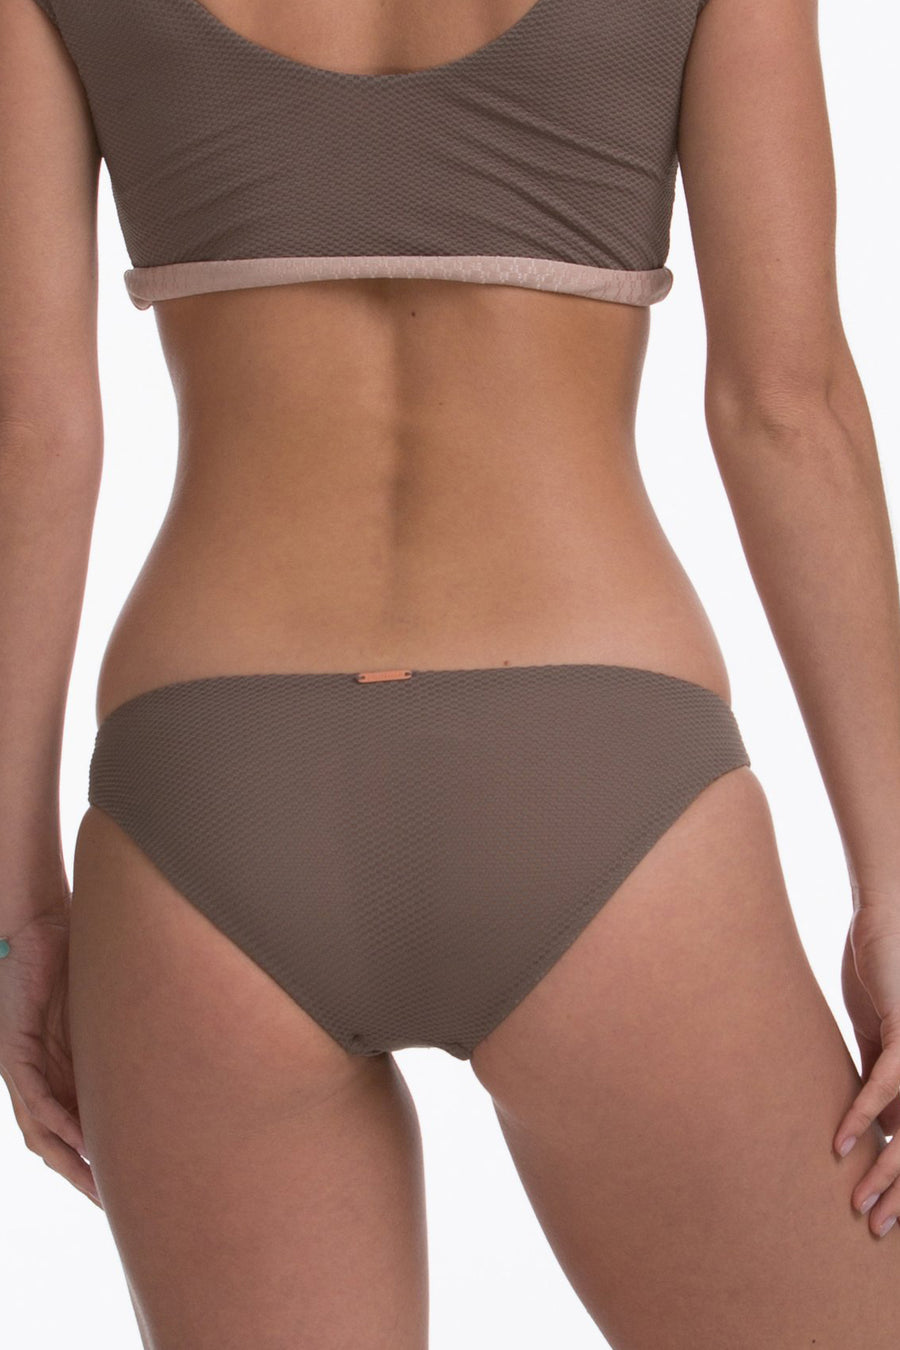 Lyra Top and Pandora Bottom in Olive